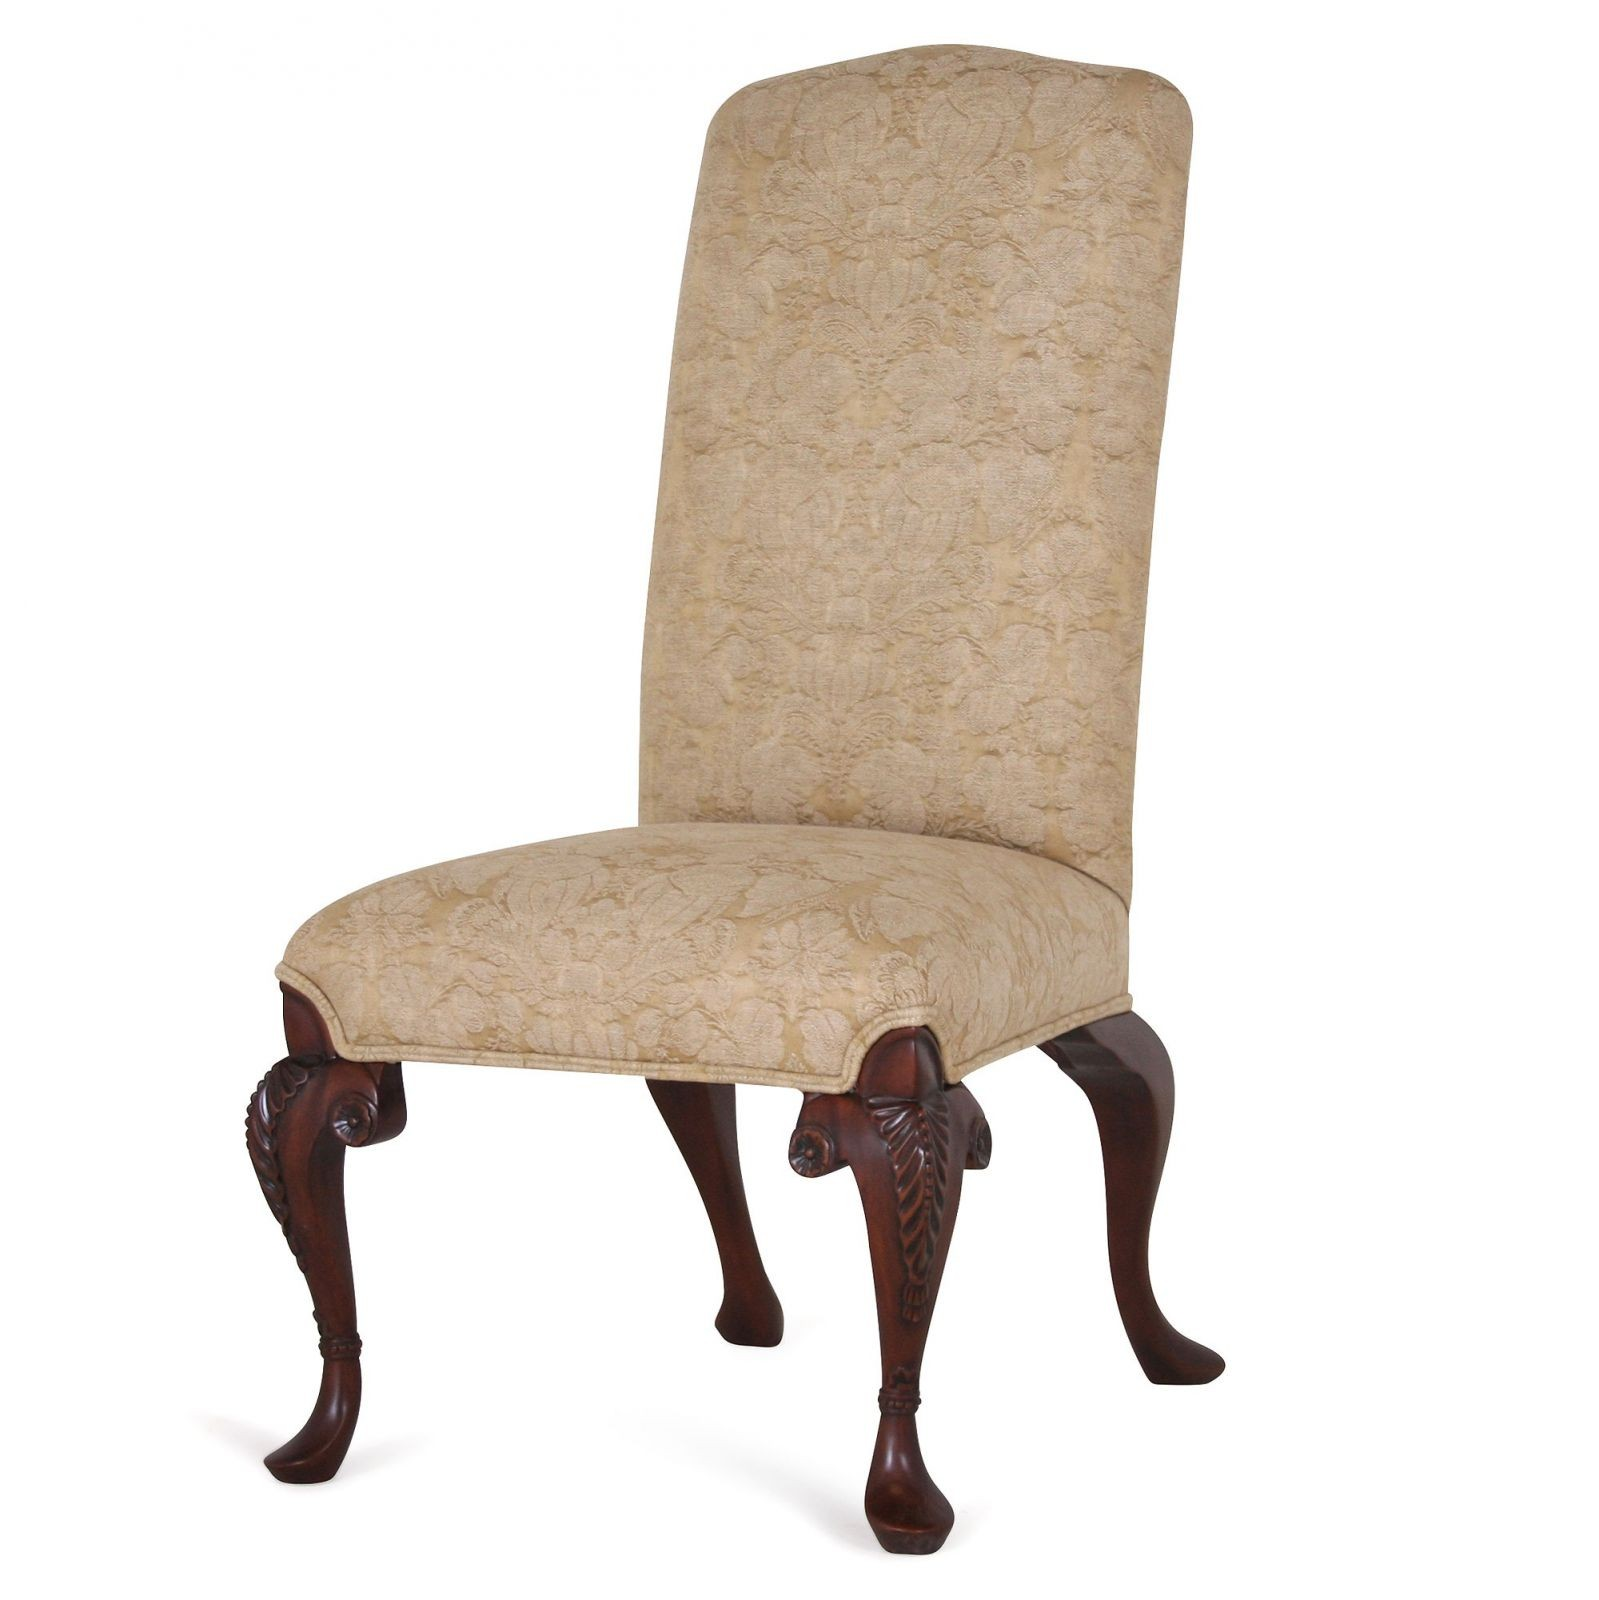 Auntie's georgian style dining side chair in Linwood Sakura